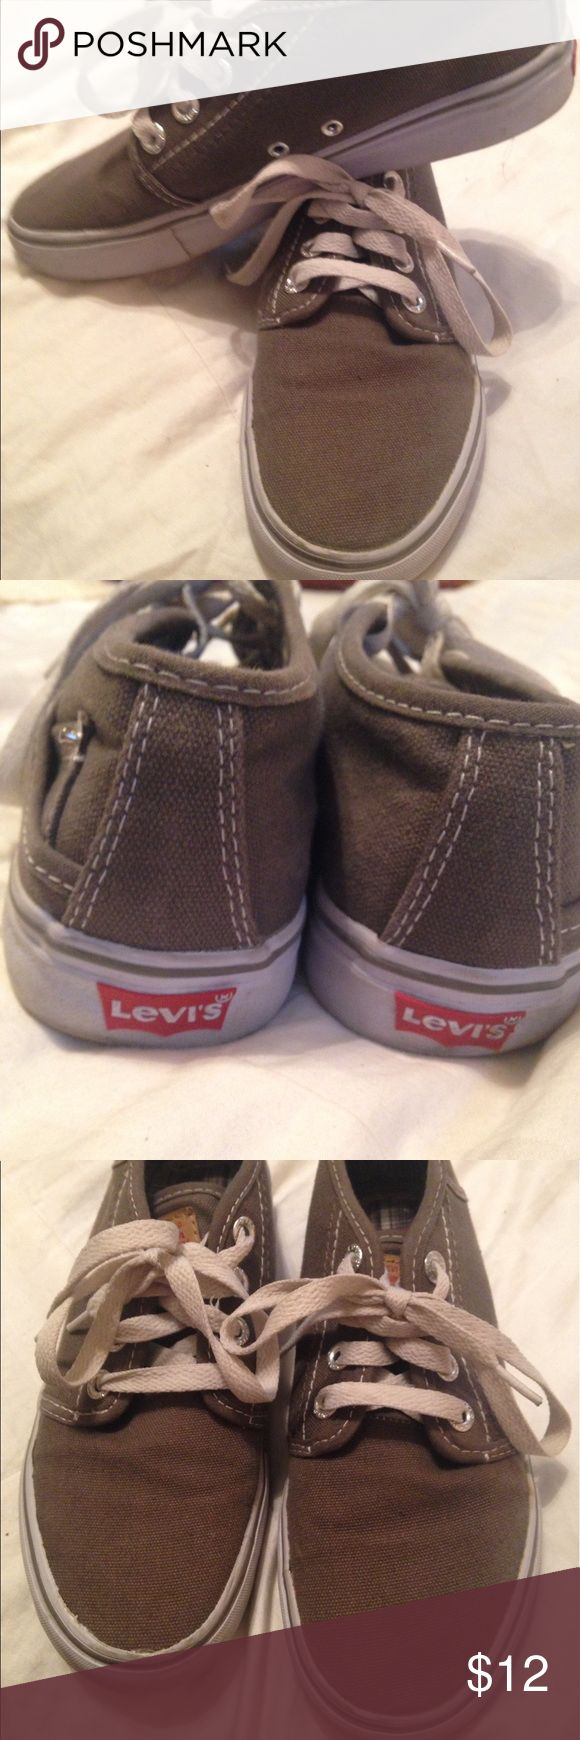 Women's Levi's sneakers Really cute pair of Levi's casual sneaks fit true to size great condition 8 1/2 Levi's Shoes Sneakers